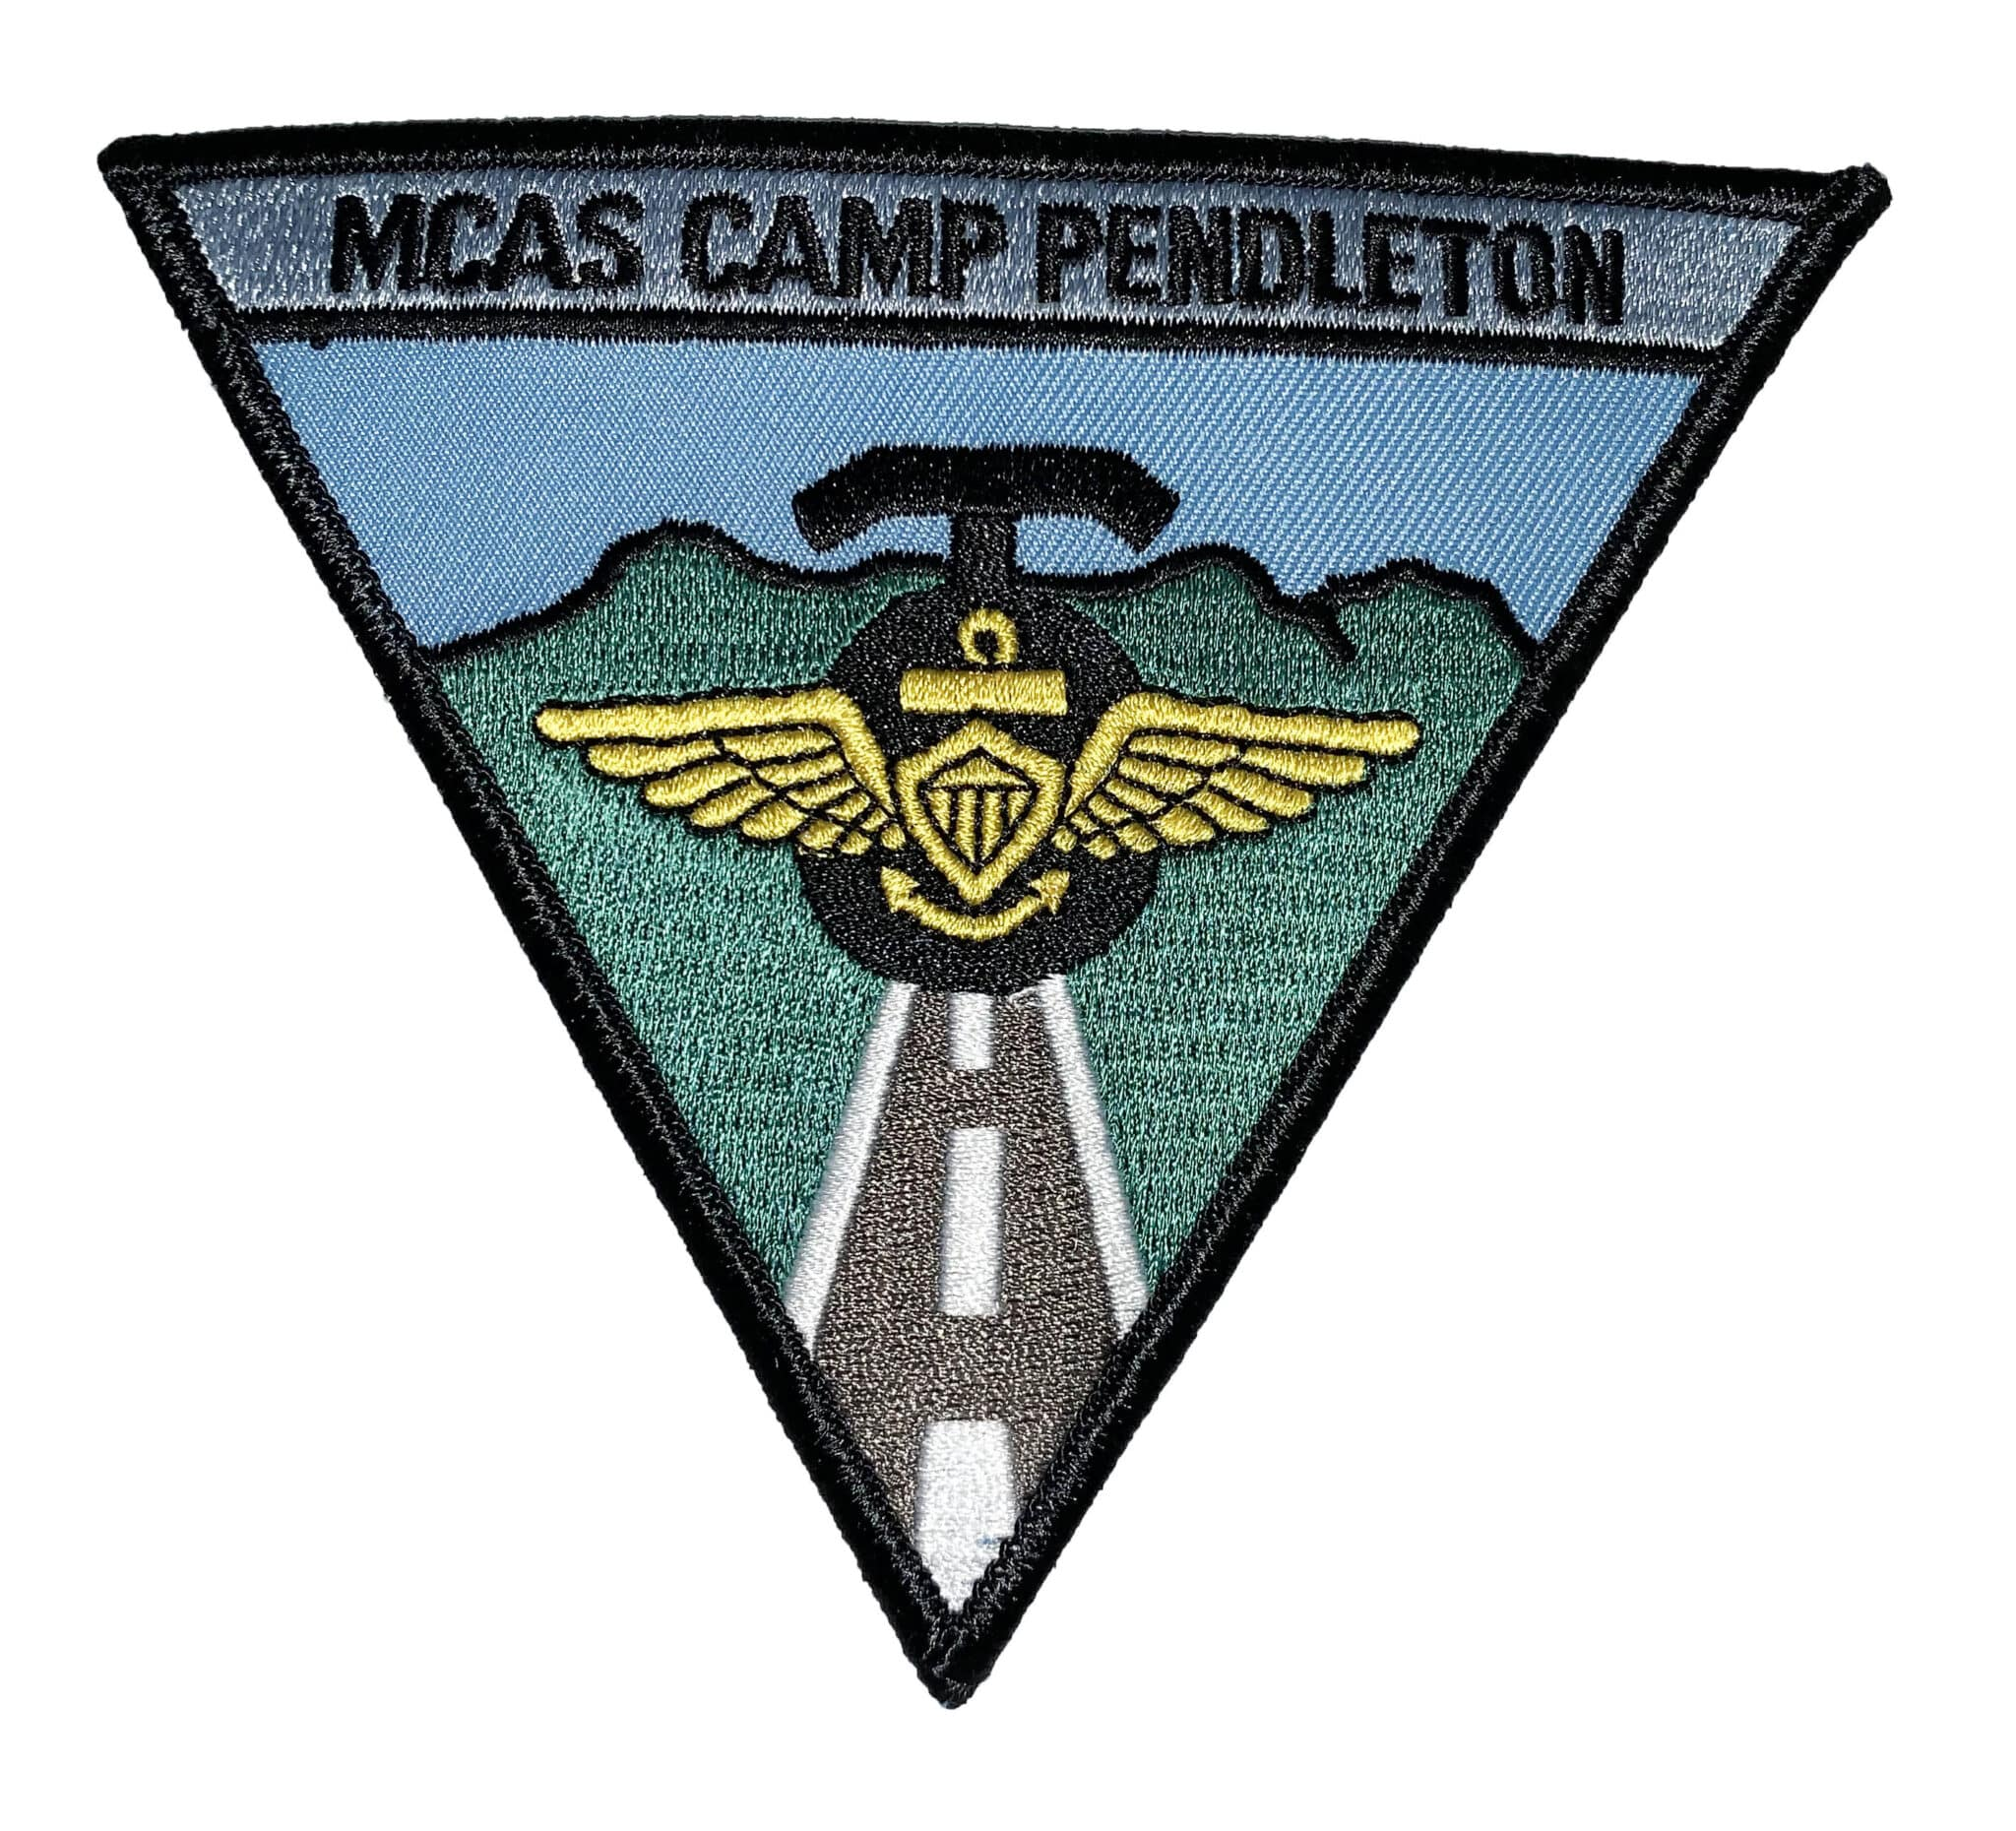 MCAS Camp Pendleton Patch – Sew On